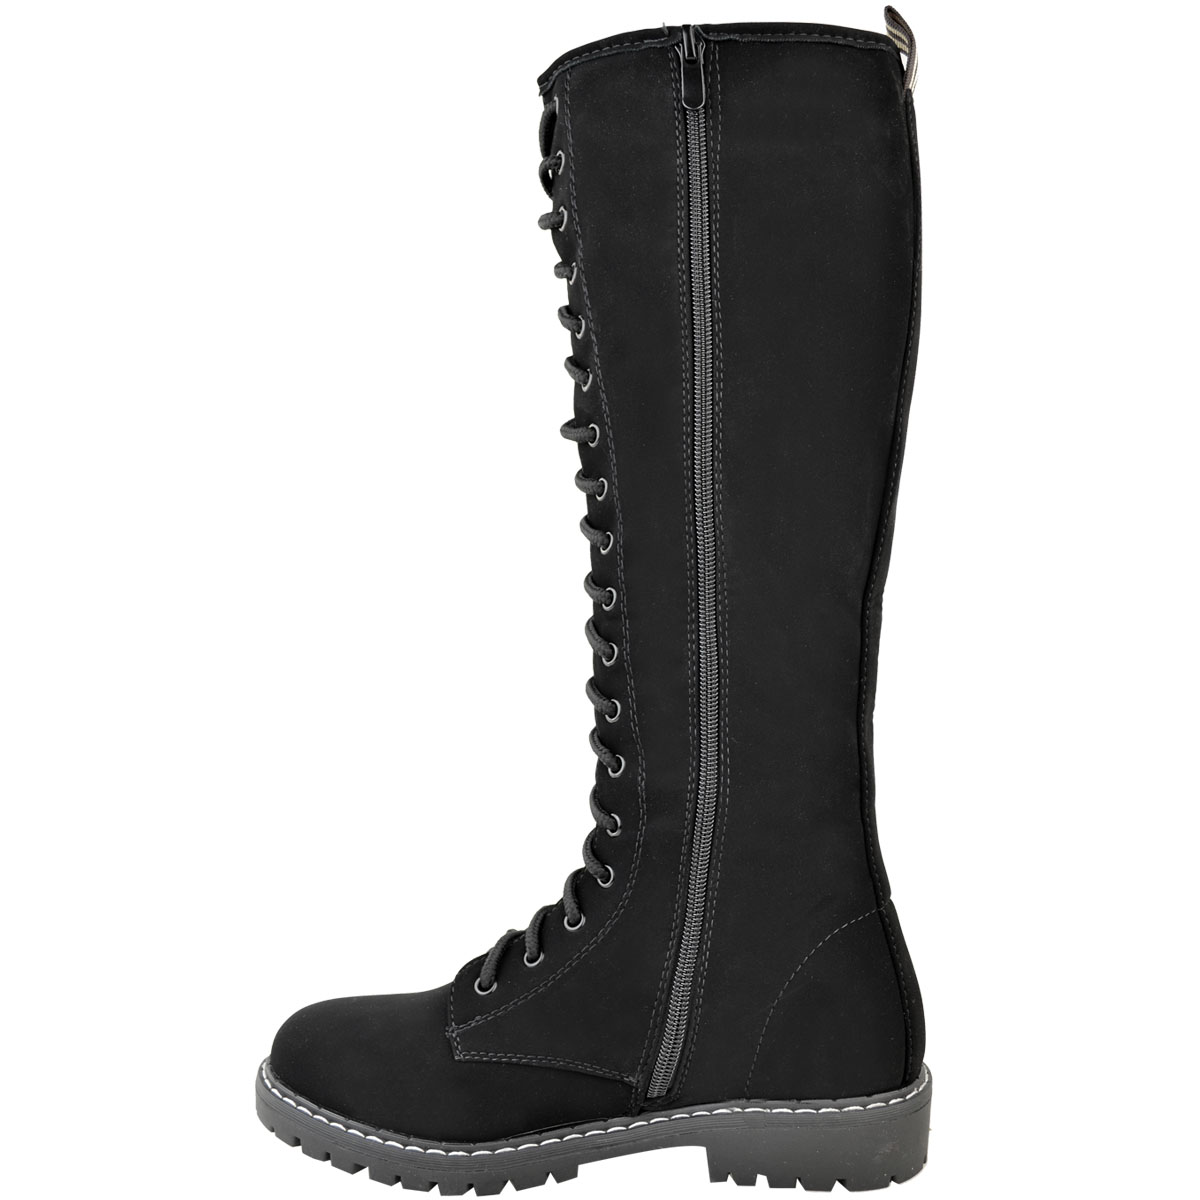 3781877274c Womens Ladies Knee High Army Combat Winter Boots Timbs Lace Up ...